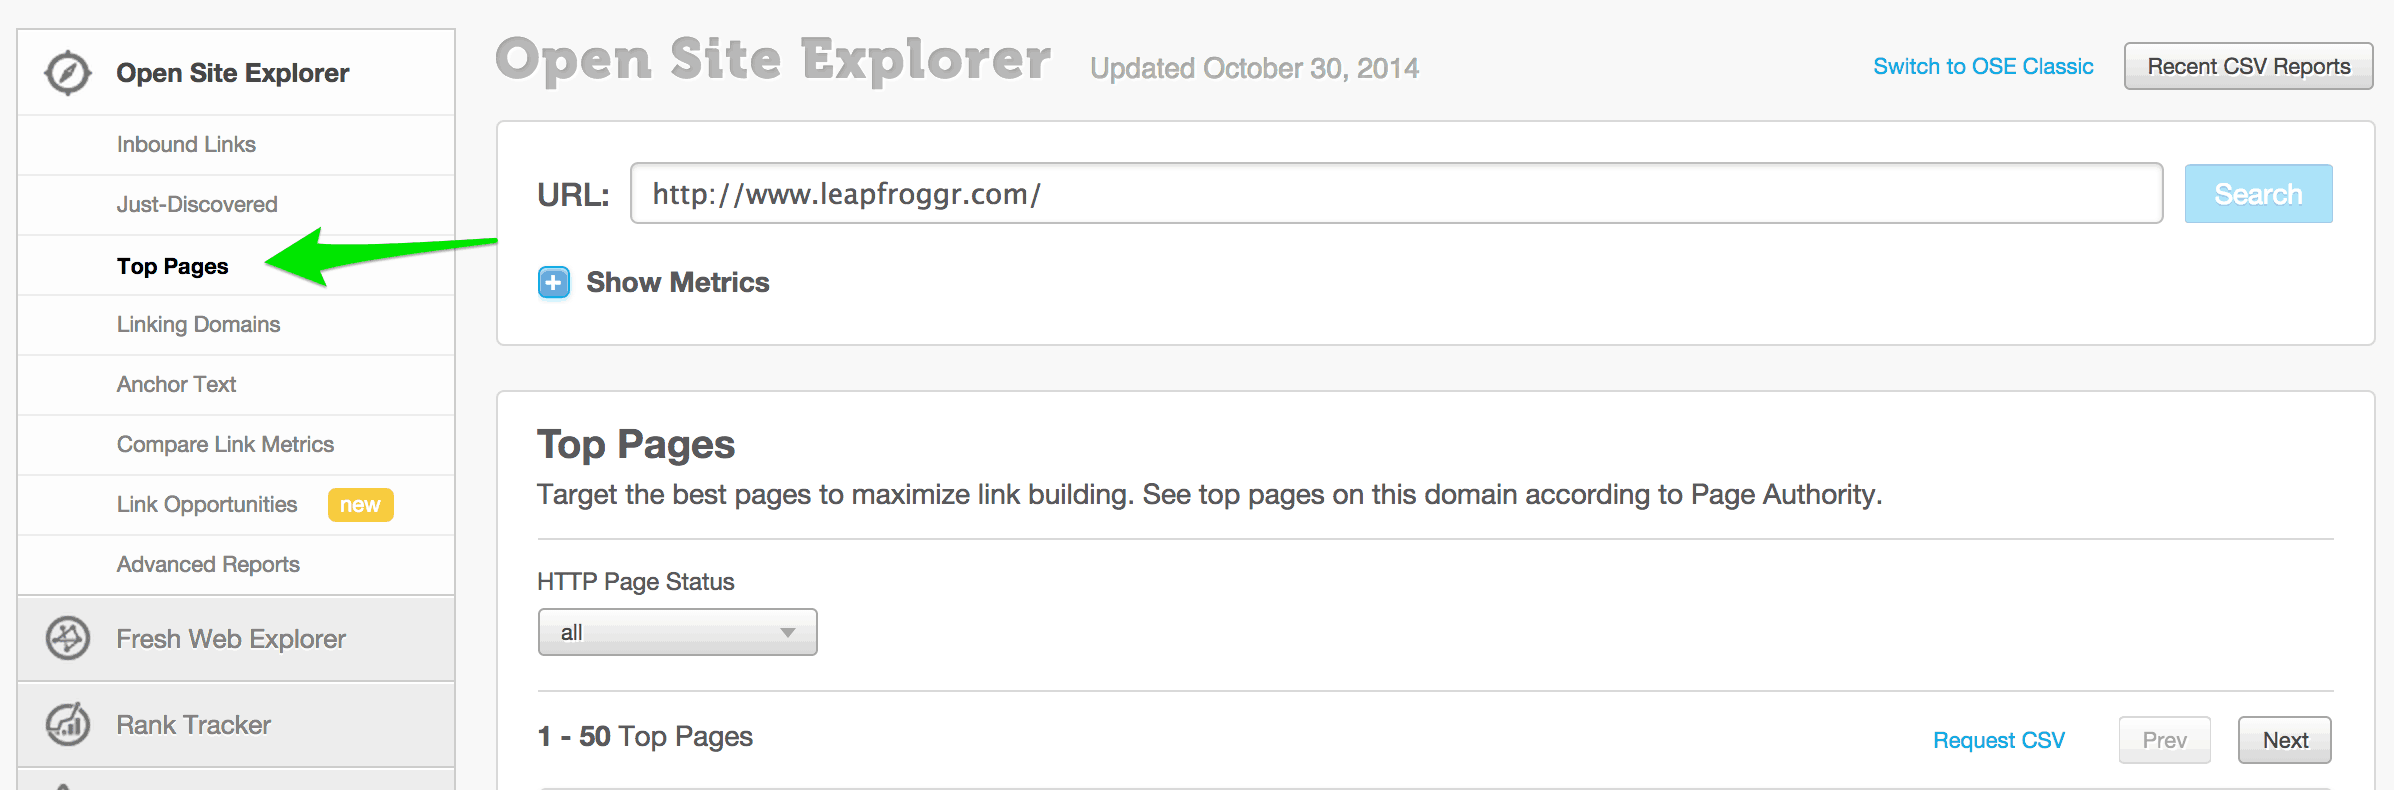 Checking Top Pages on Open Site Explorer